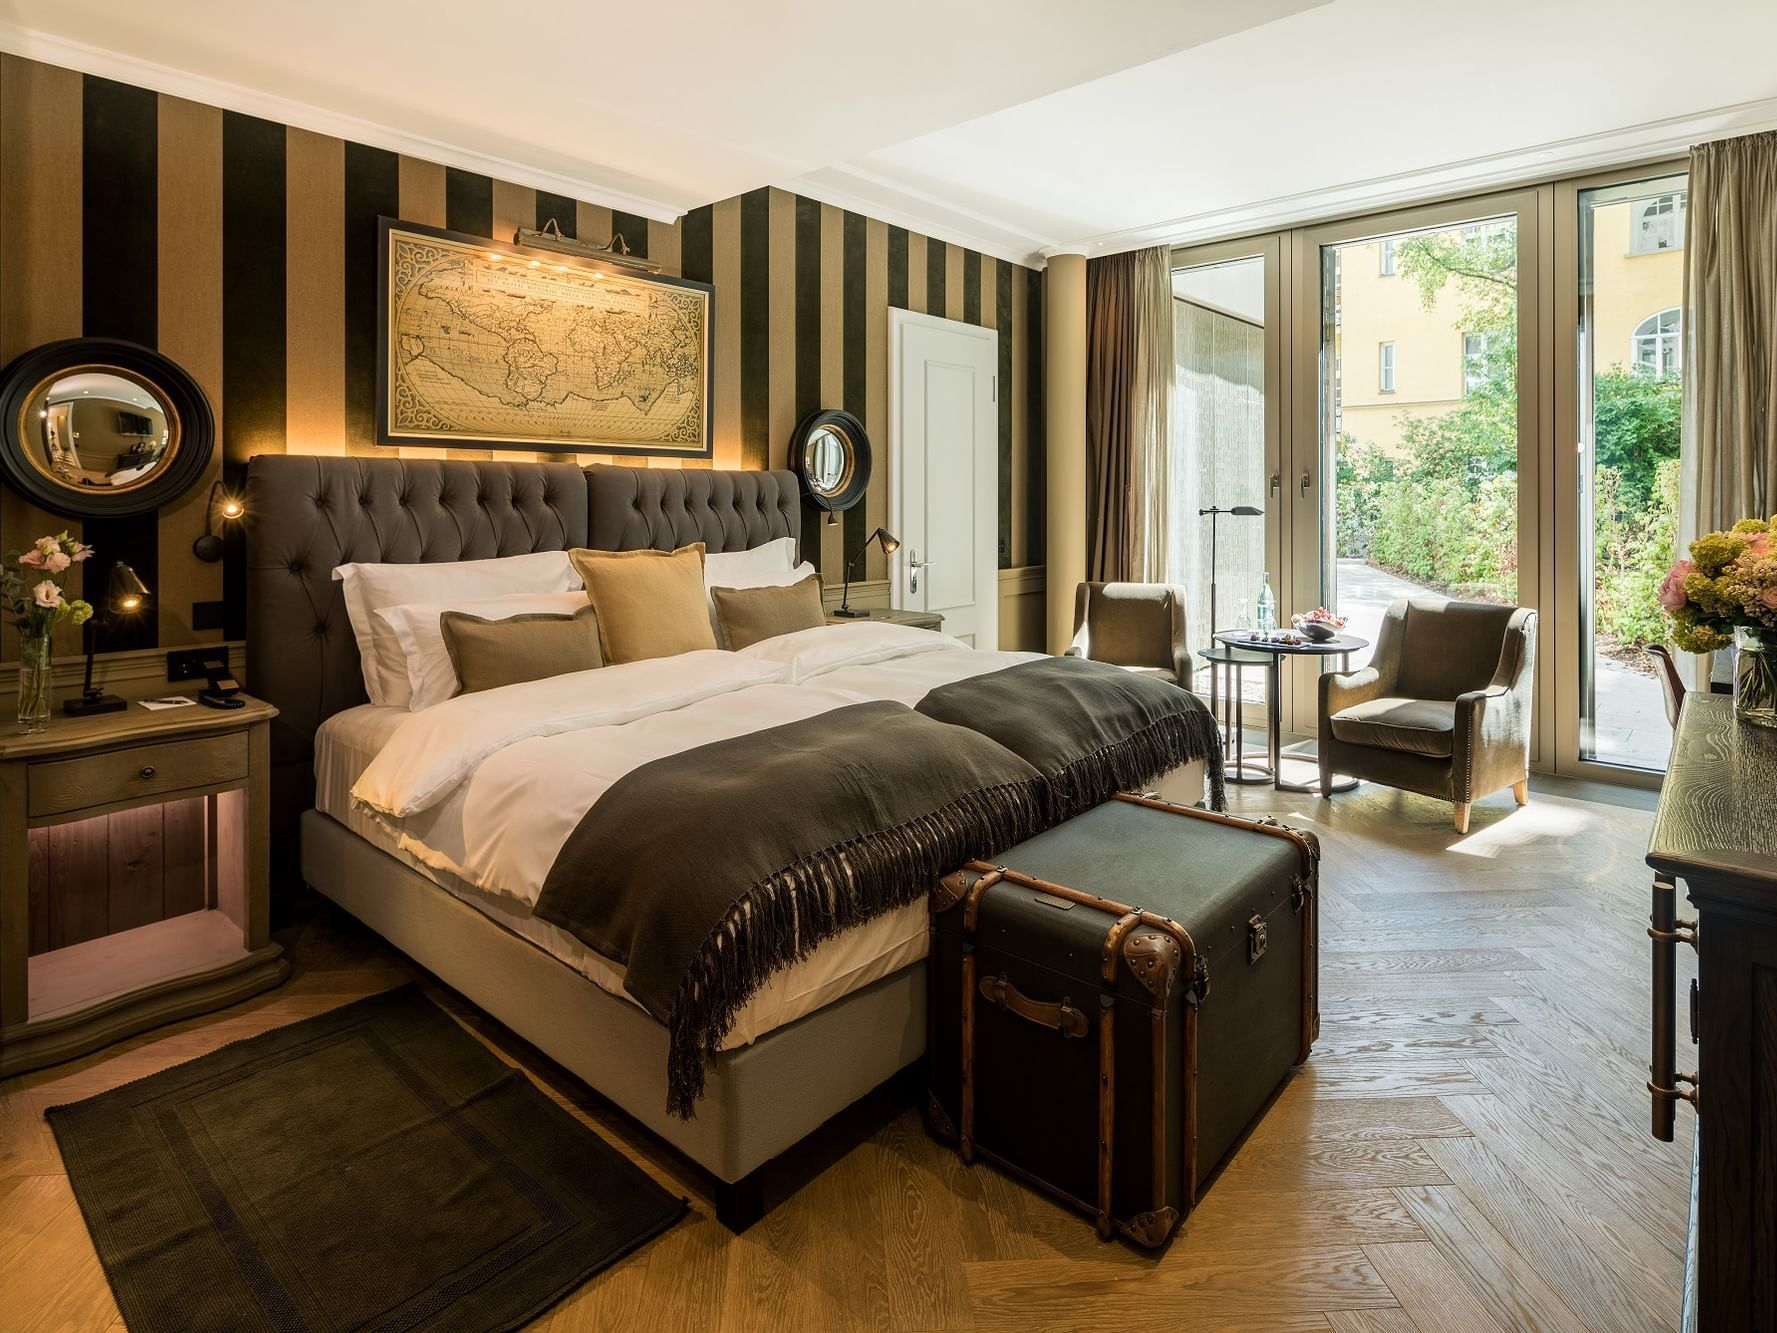 Welcome Home Offer at Hotel München Palace